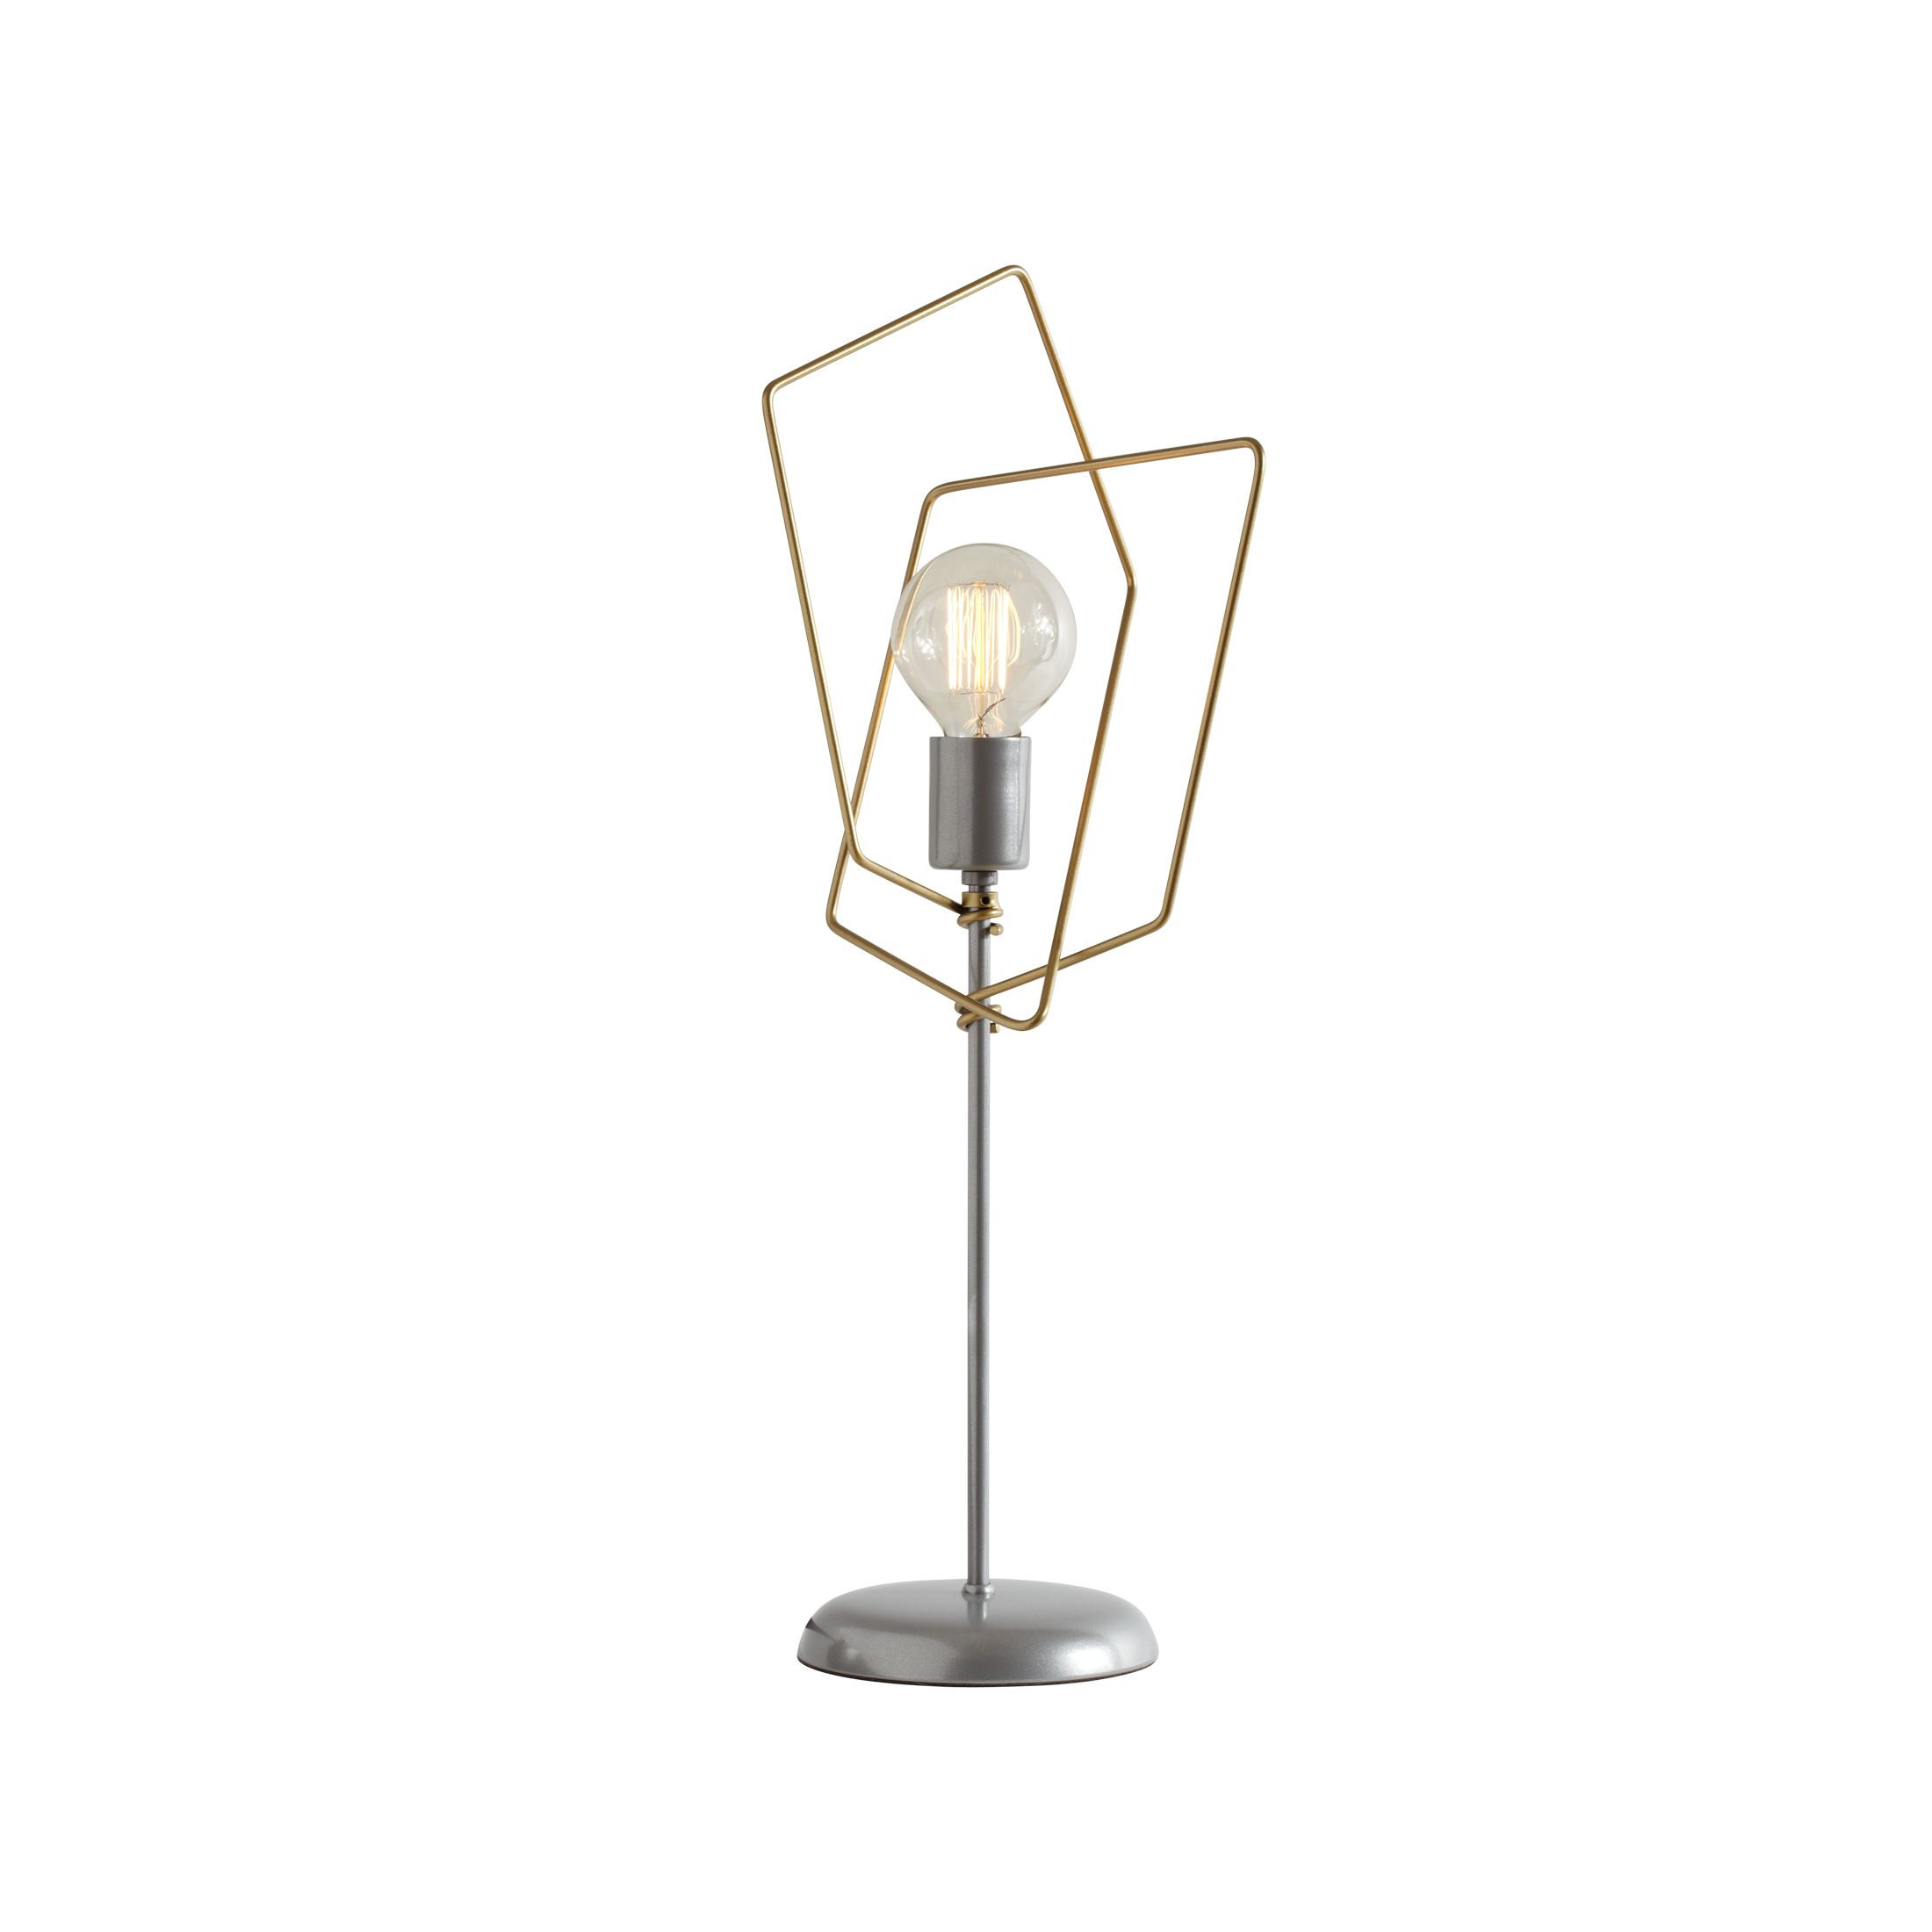 Thumbnail for Filament Table Lamp